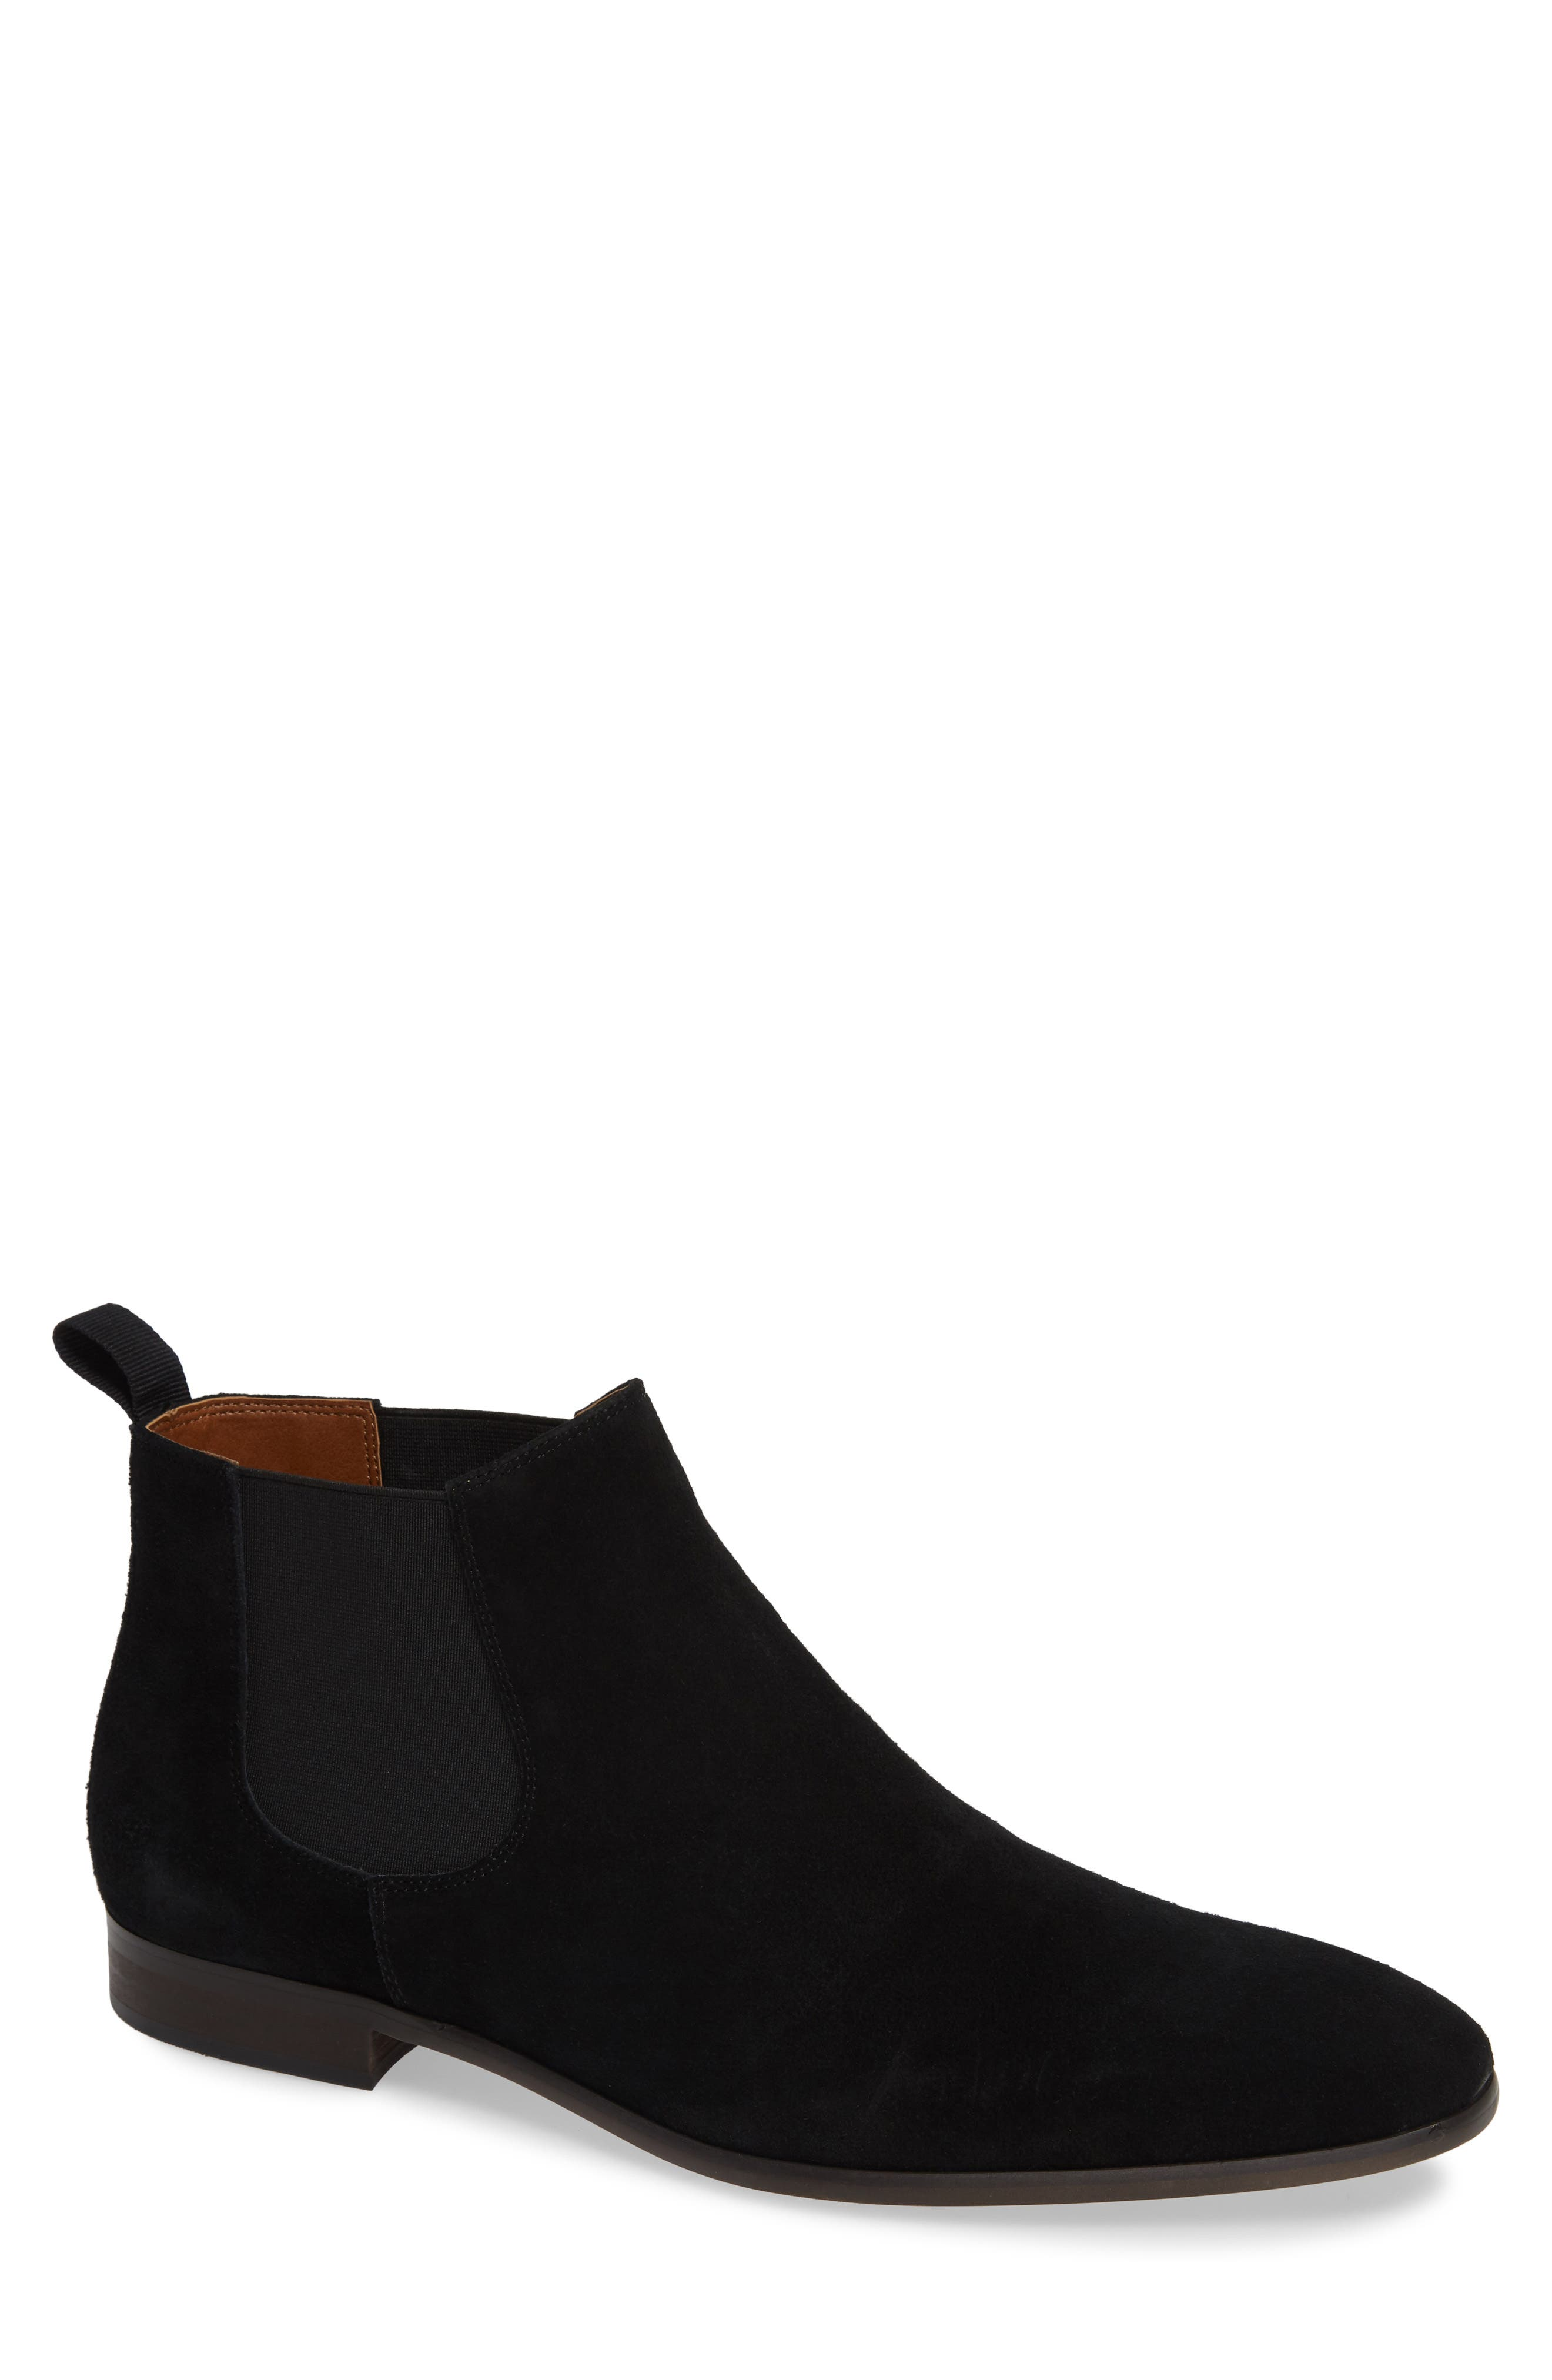 Edward Chelsea Boot by The Rail